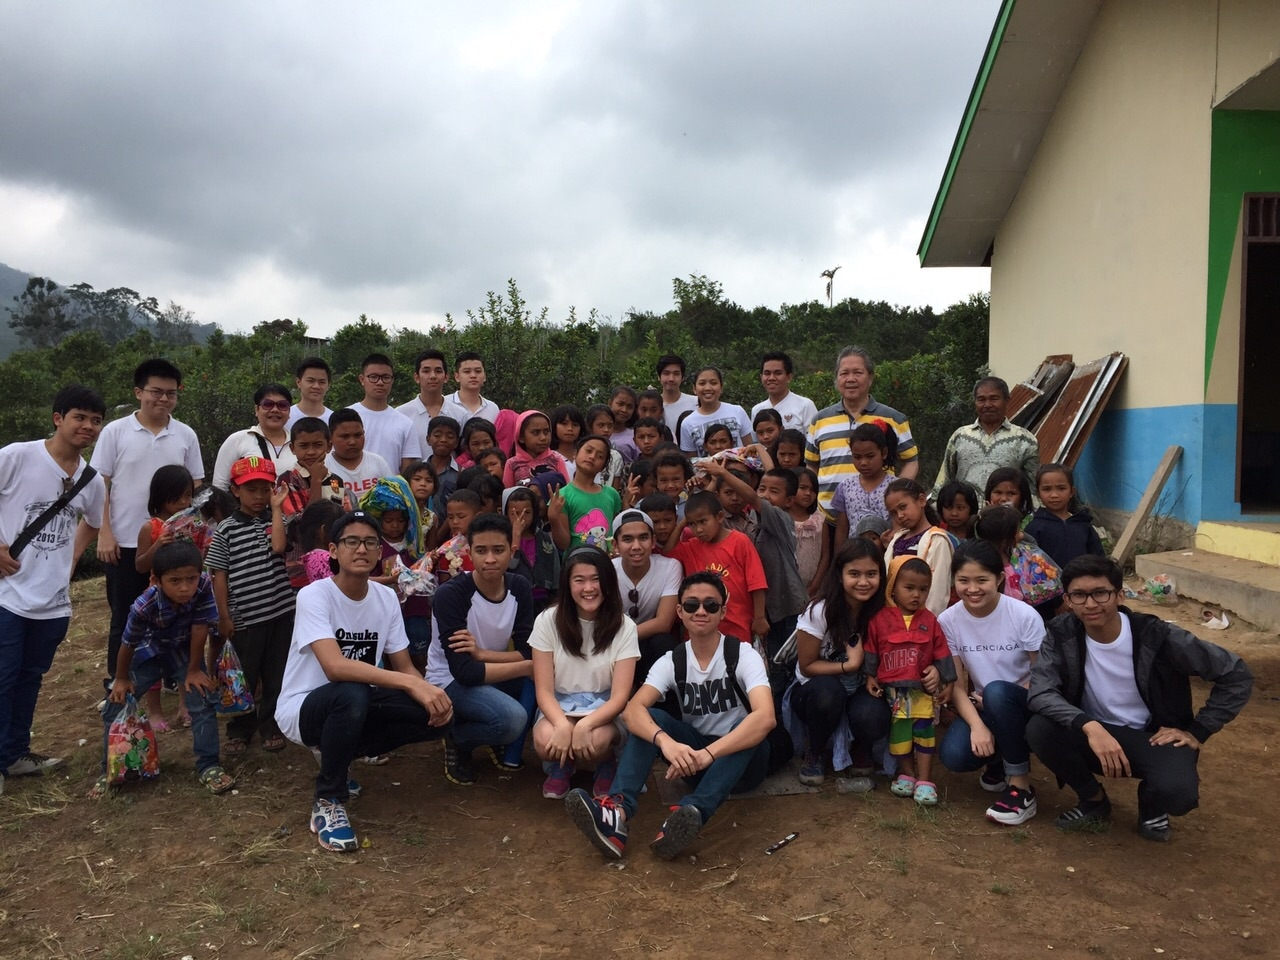 BINUS SCHOOL SIMPRUG HOLDS A CHARITY EVENT WITH PROUD READERS